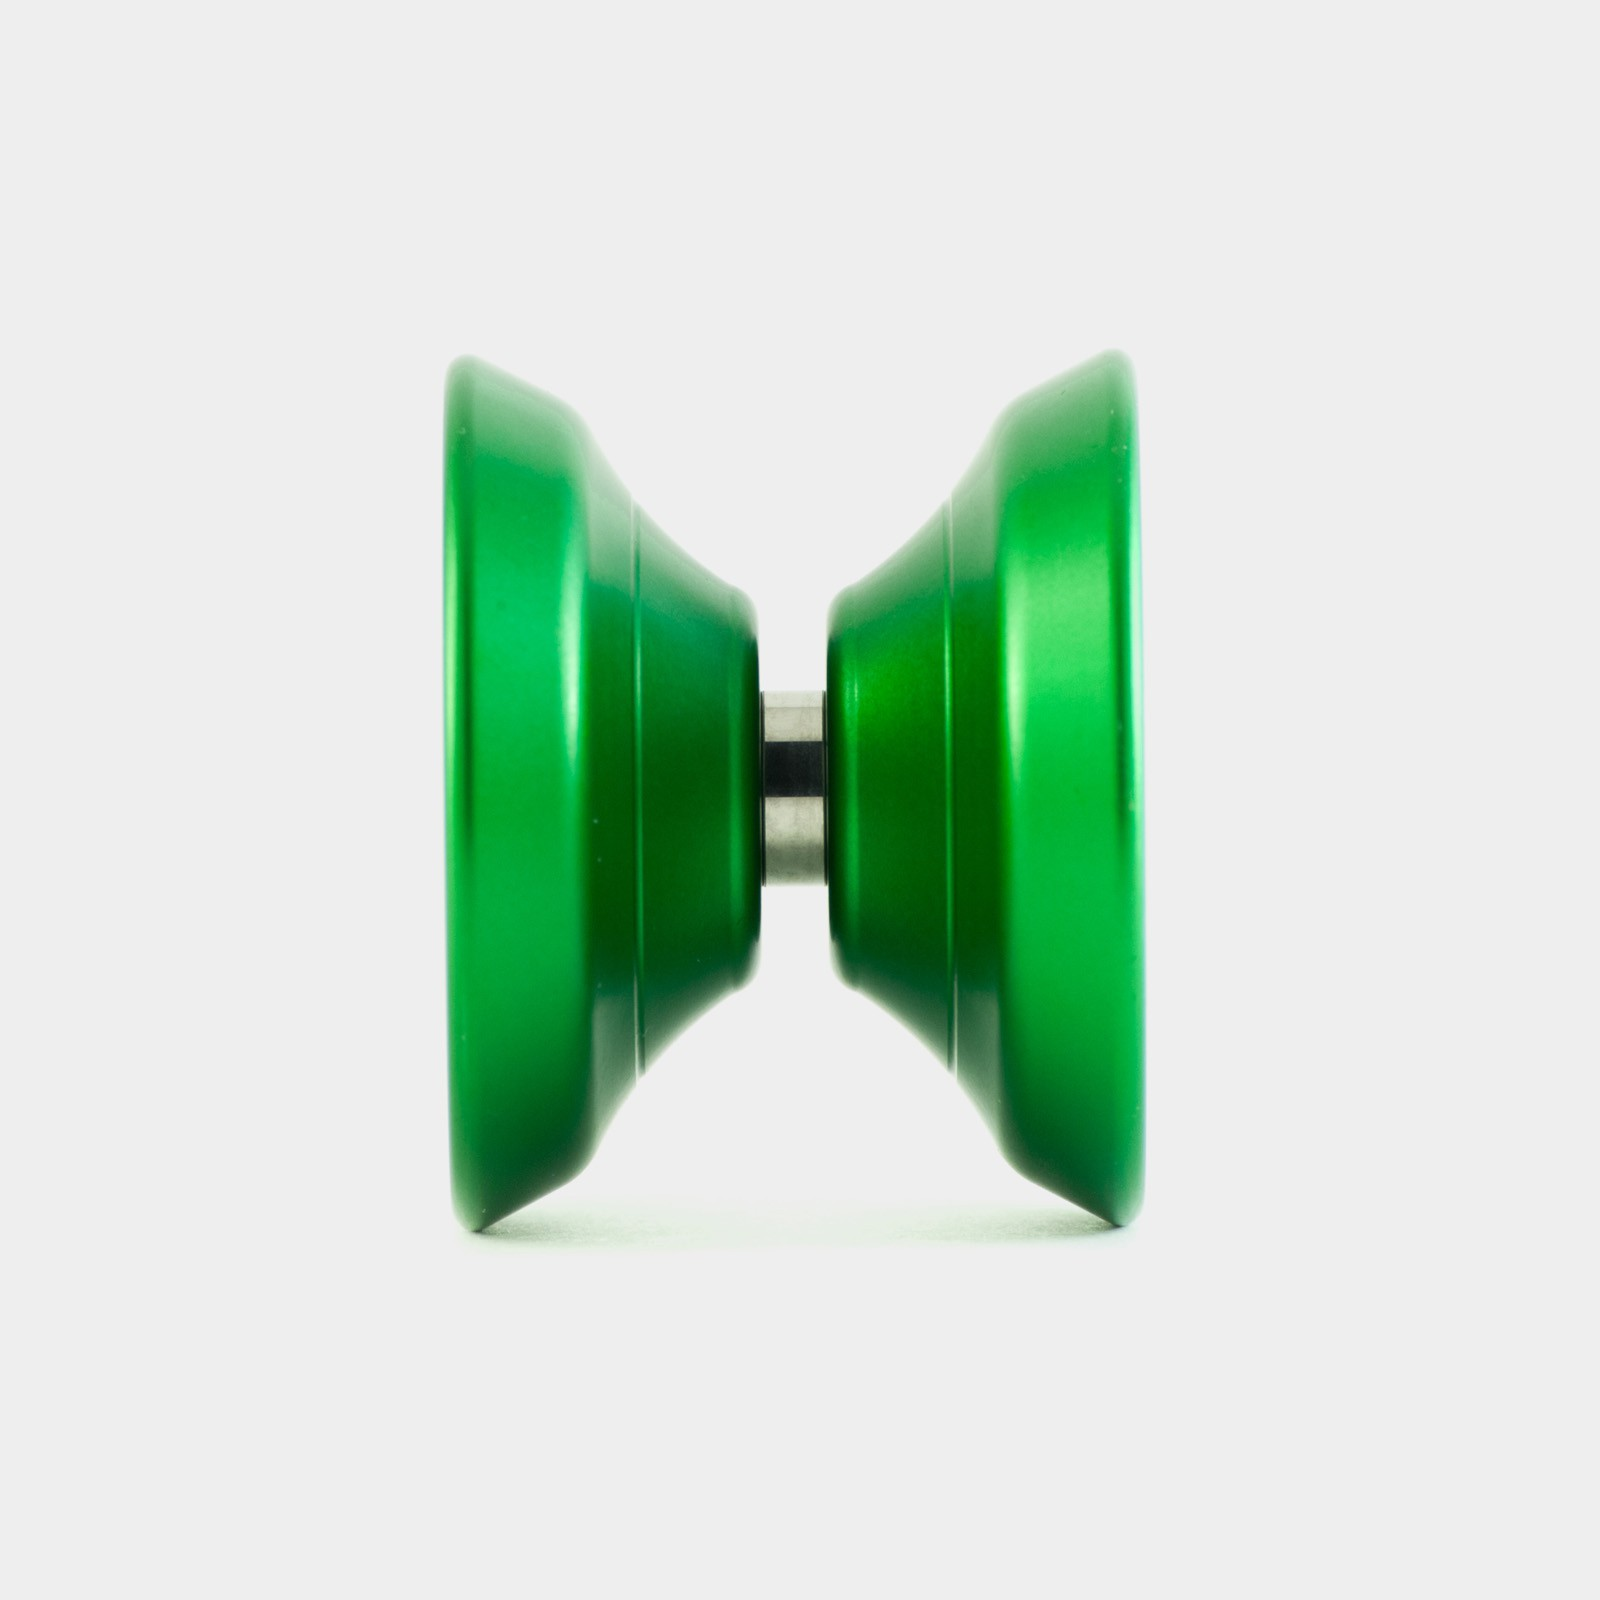 Gradient yo-yo in Green by One Drop YoYos